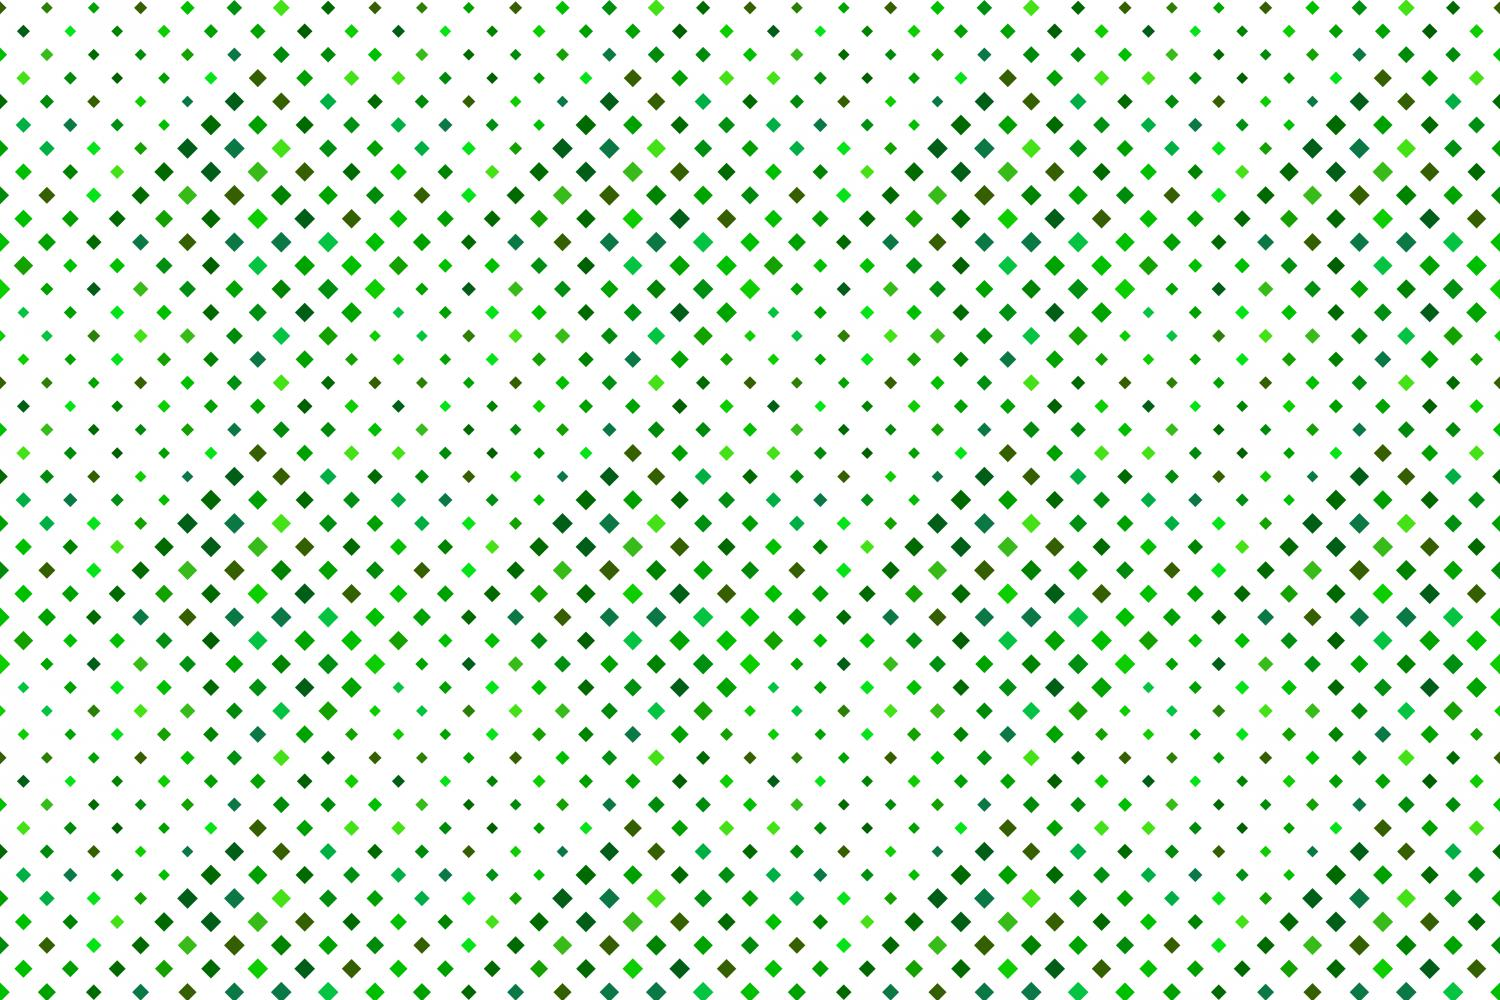 24 Seamless Green Square Patterns example image 2